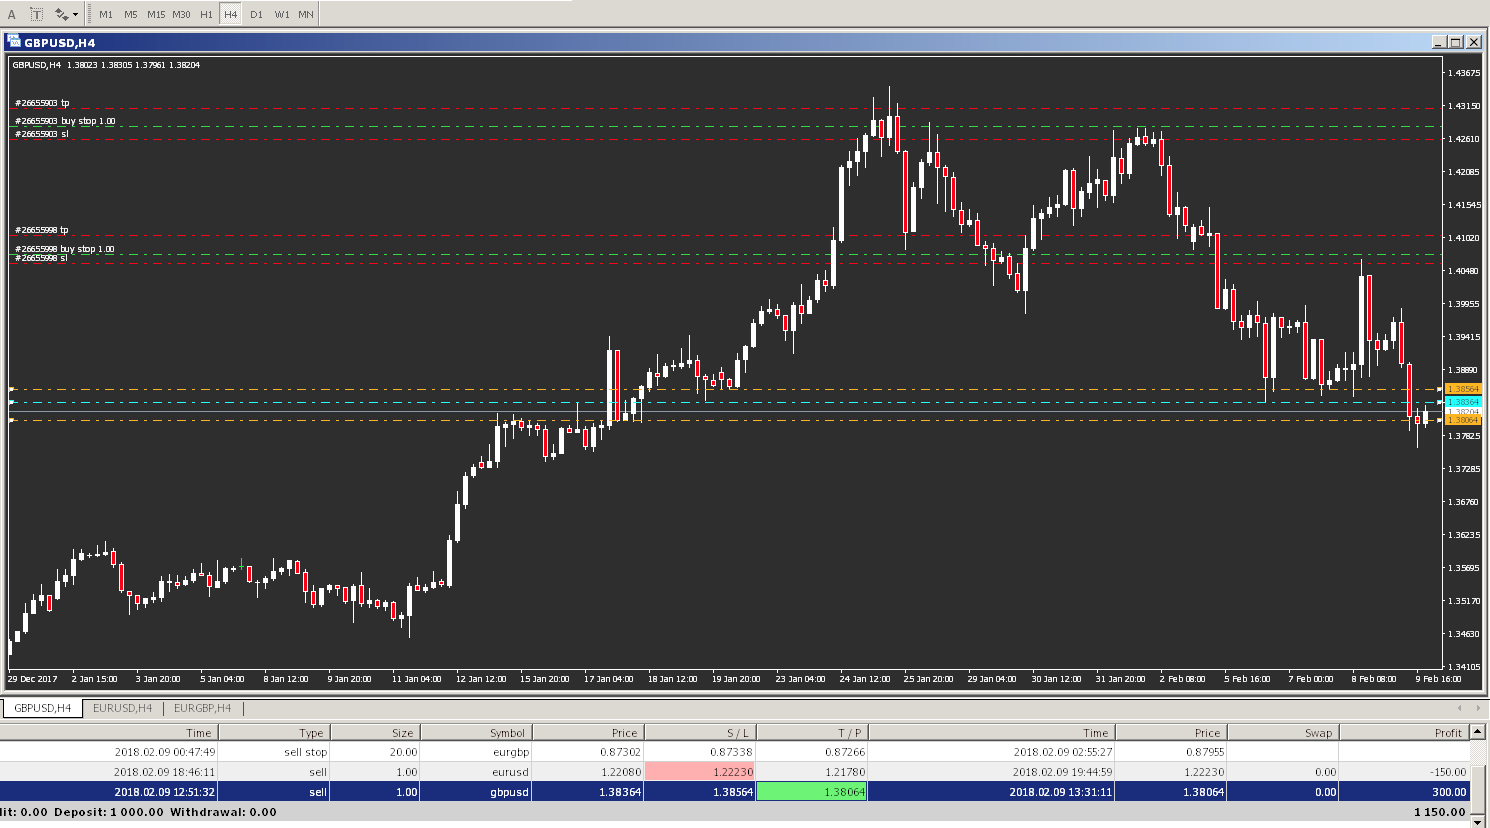 How To Trade Forex With $500